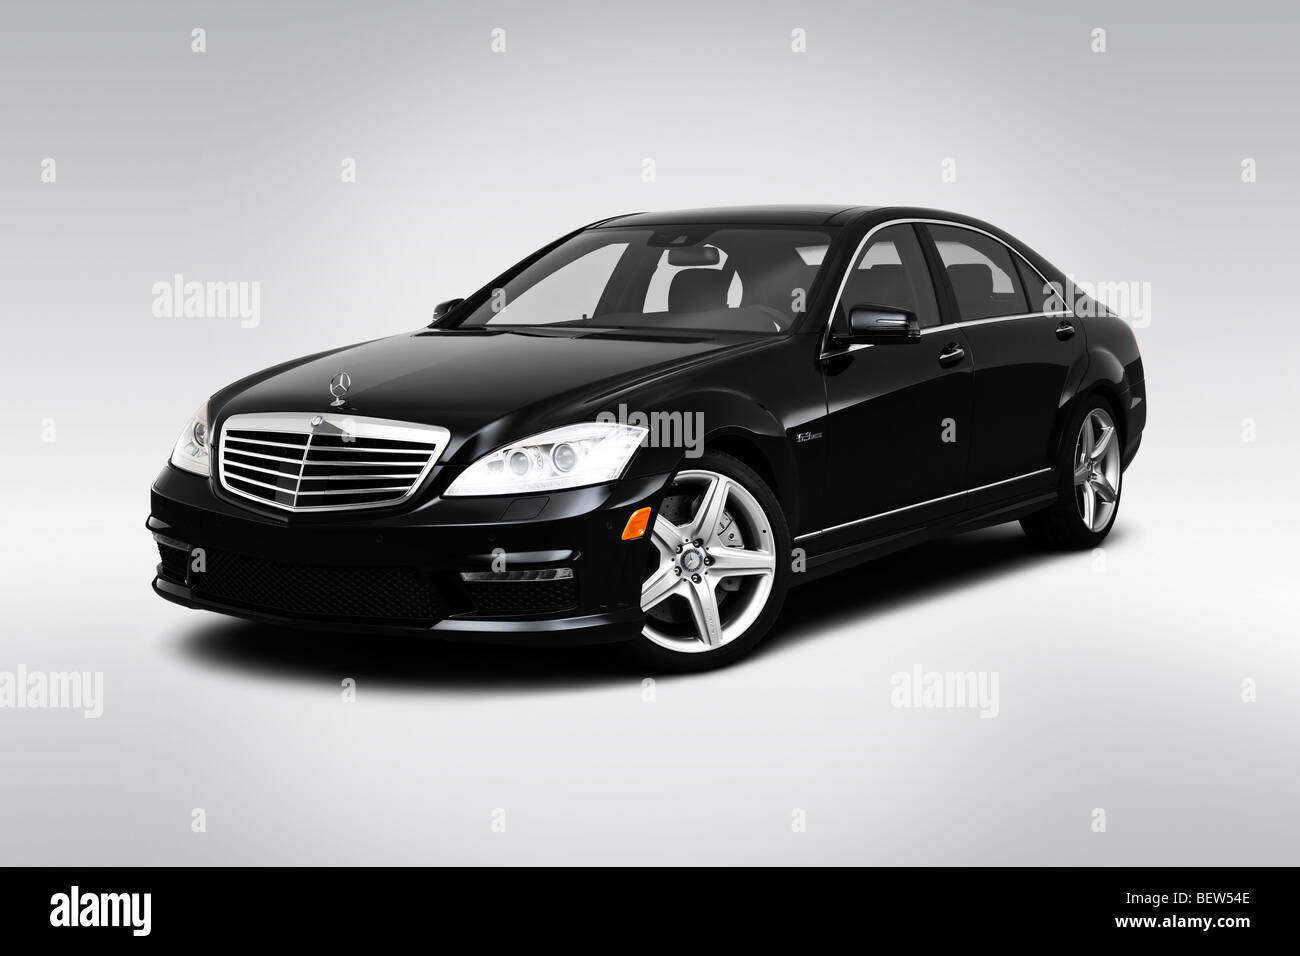 2010 mercedes benz s class s63 amg in black front angle for Mercedes benz s class amg 2010